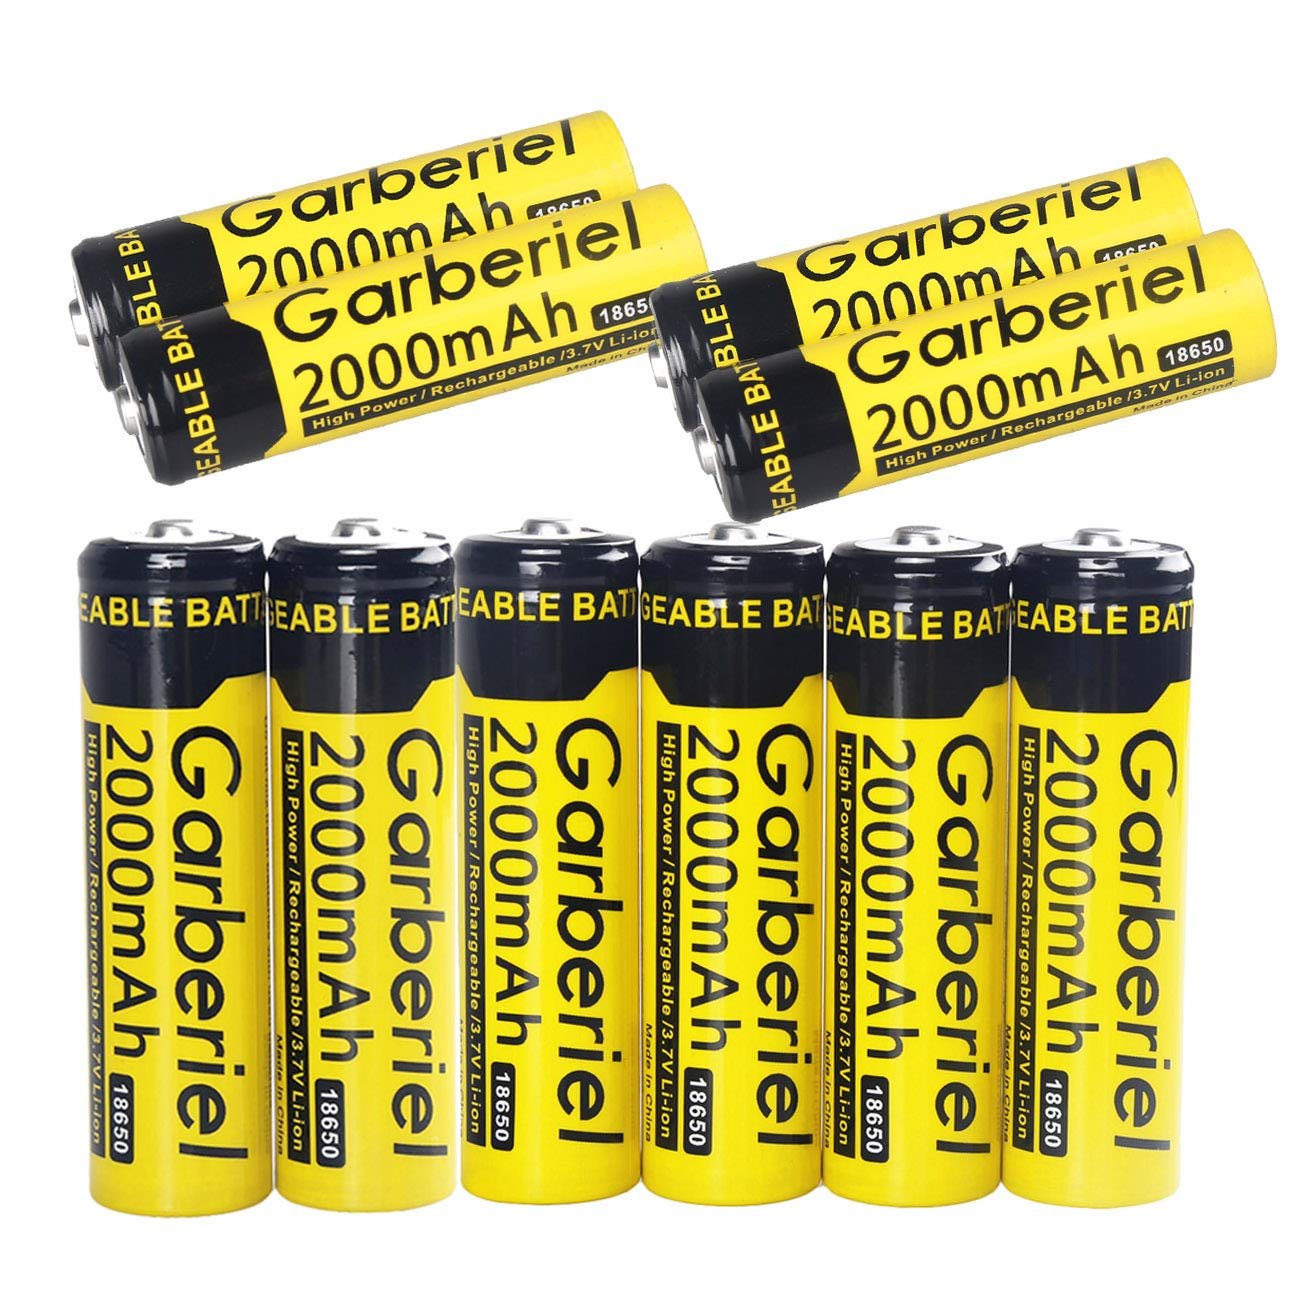 Garberiel 10 Pack 2000 mAh 3.7V 18650 Rechargeable Battery Li-ion Batteries for Outdoor LED Flashlight Headlamp, Button Top